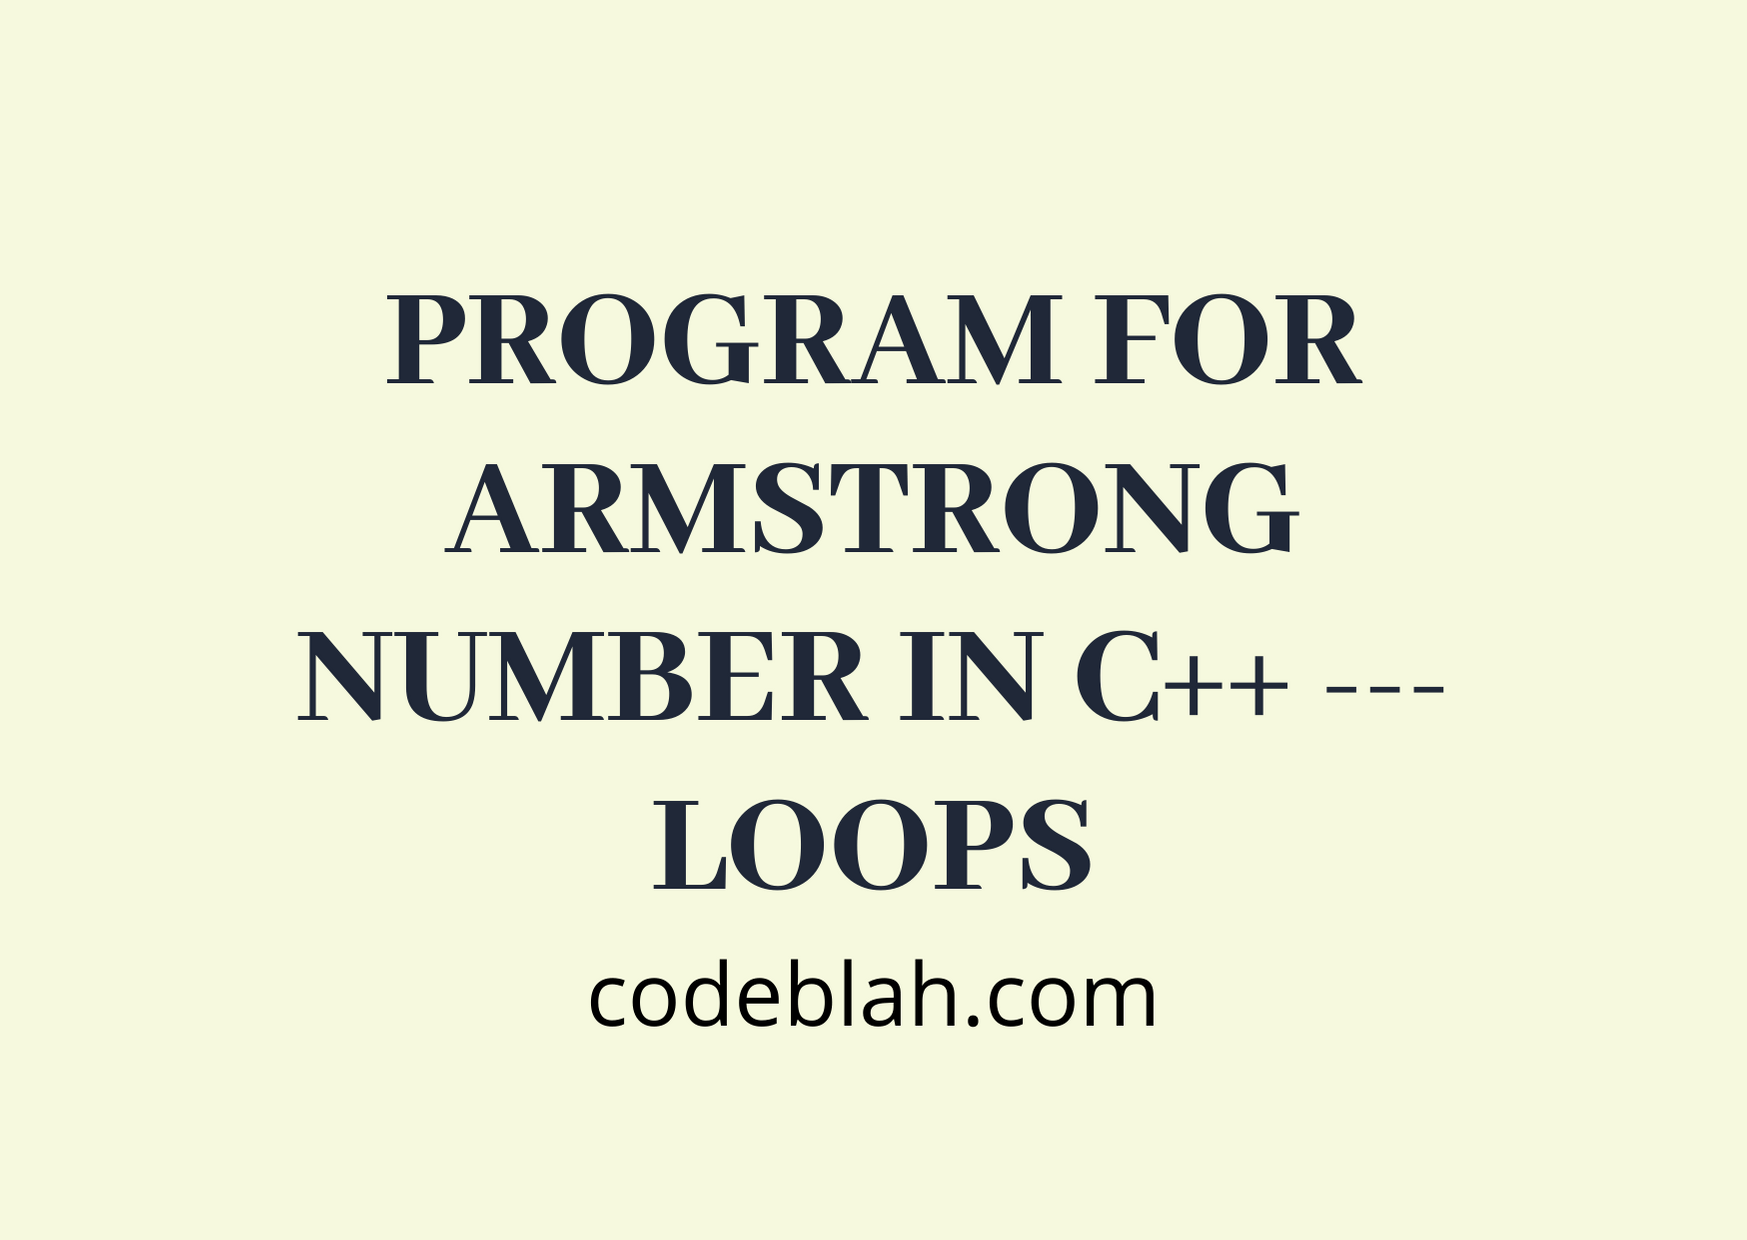 Program for Armstrong Number in C++ ---Loops